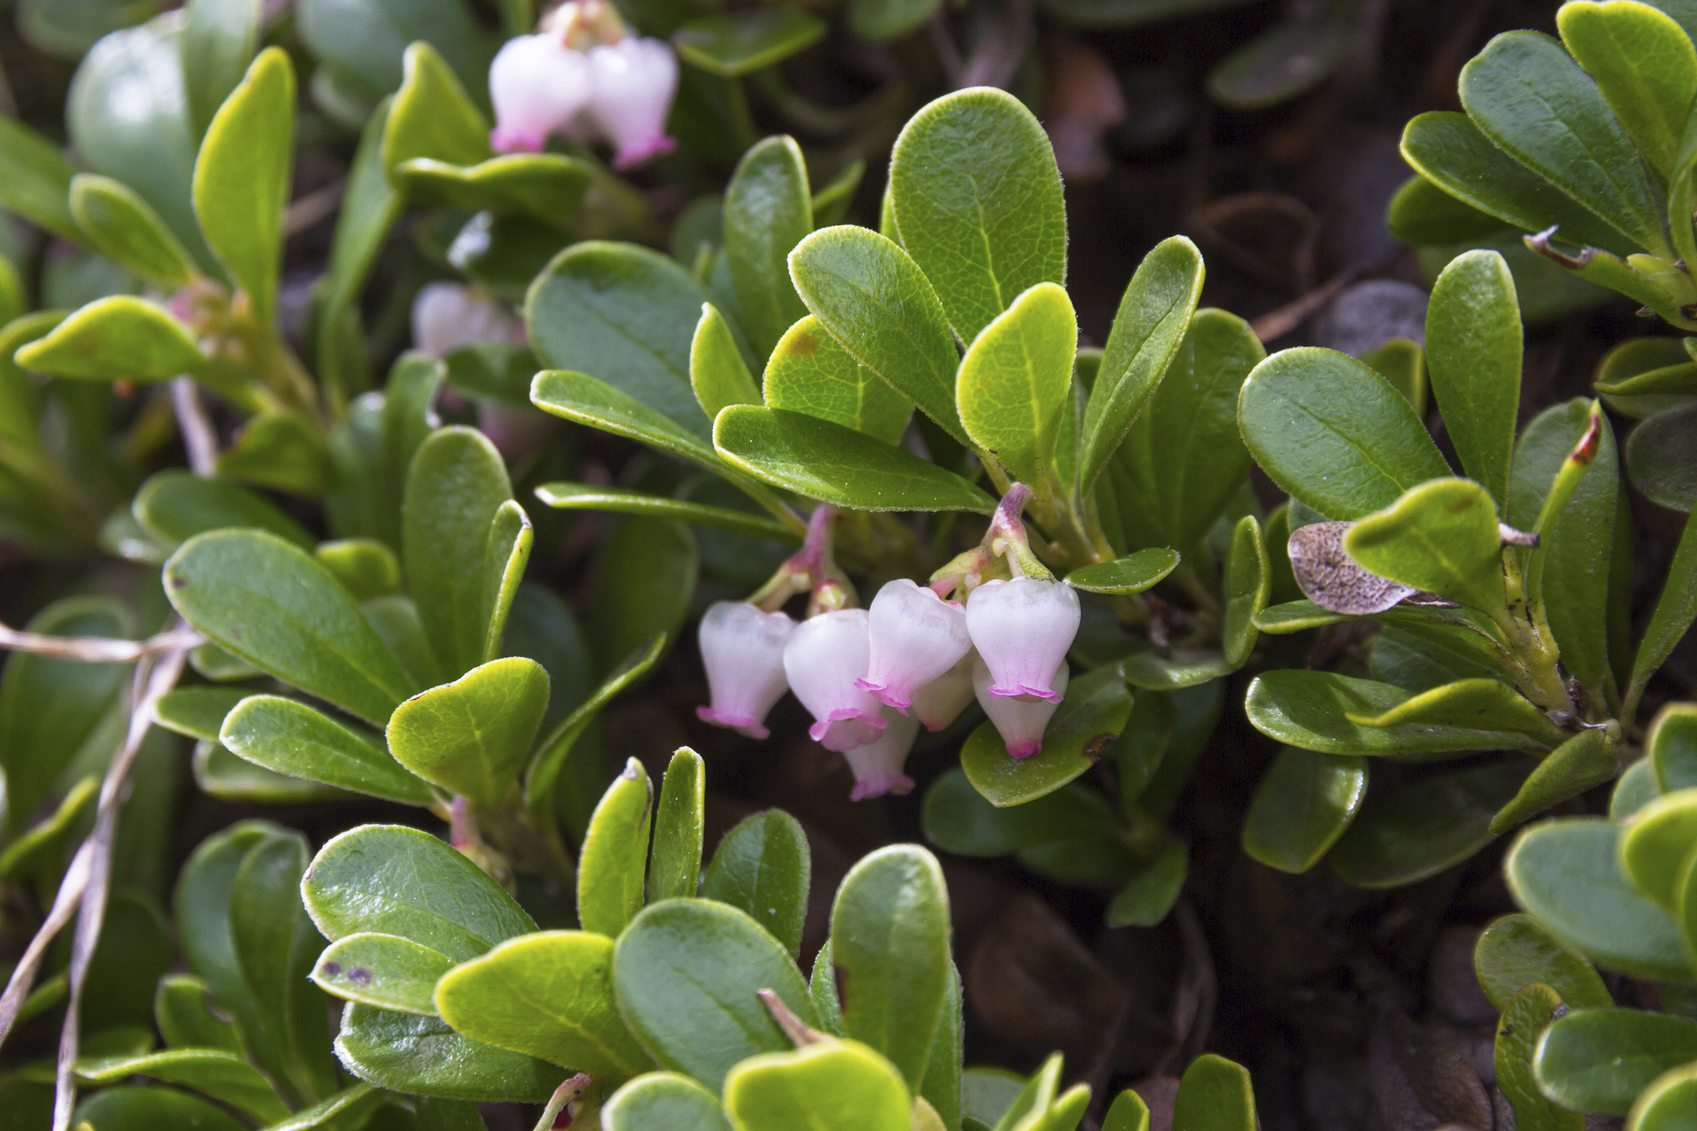 Cold Hardy Evergreen Shrubs Choosing Evergreen Shrubs For Zone 4